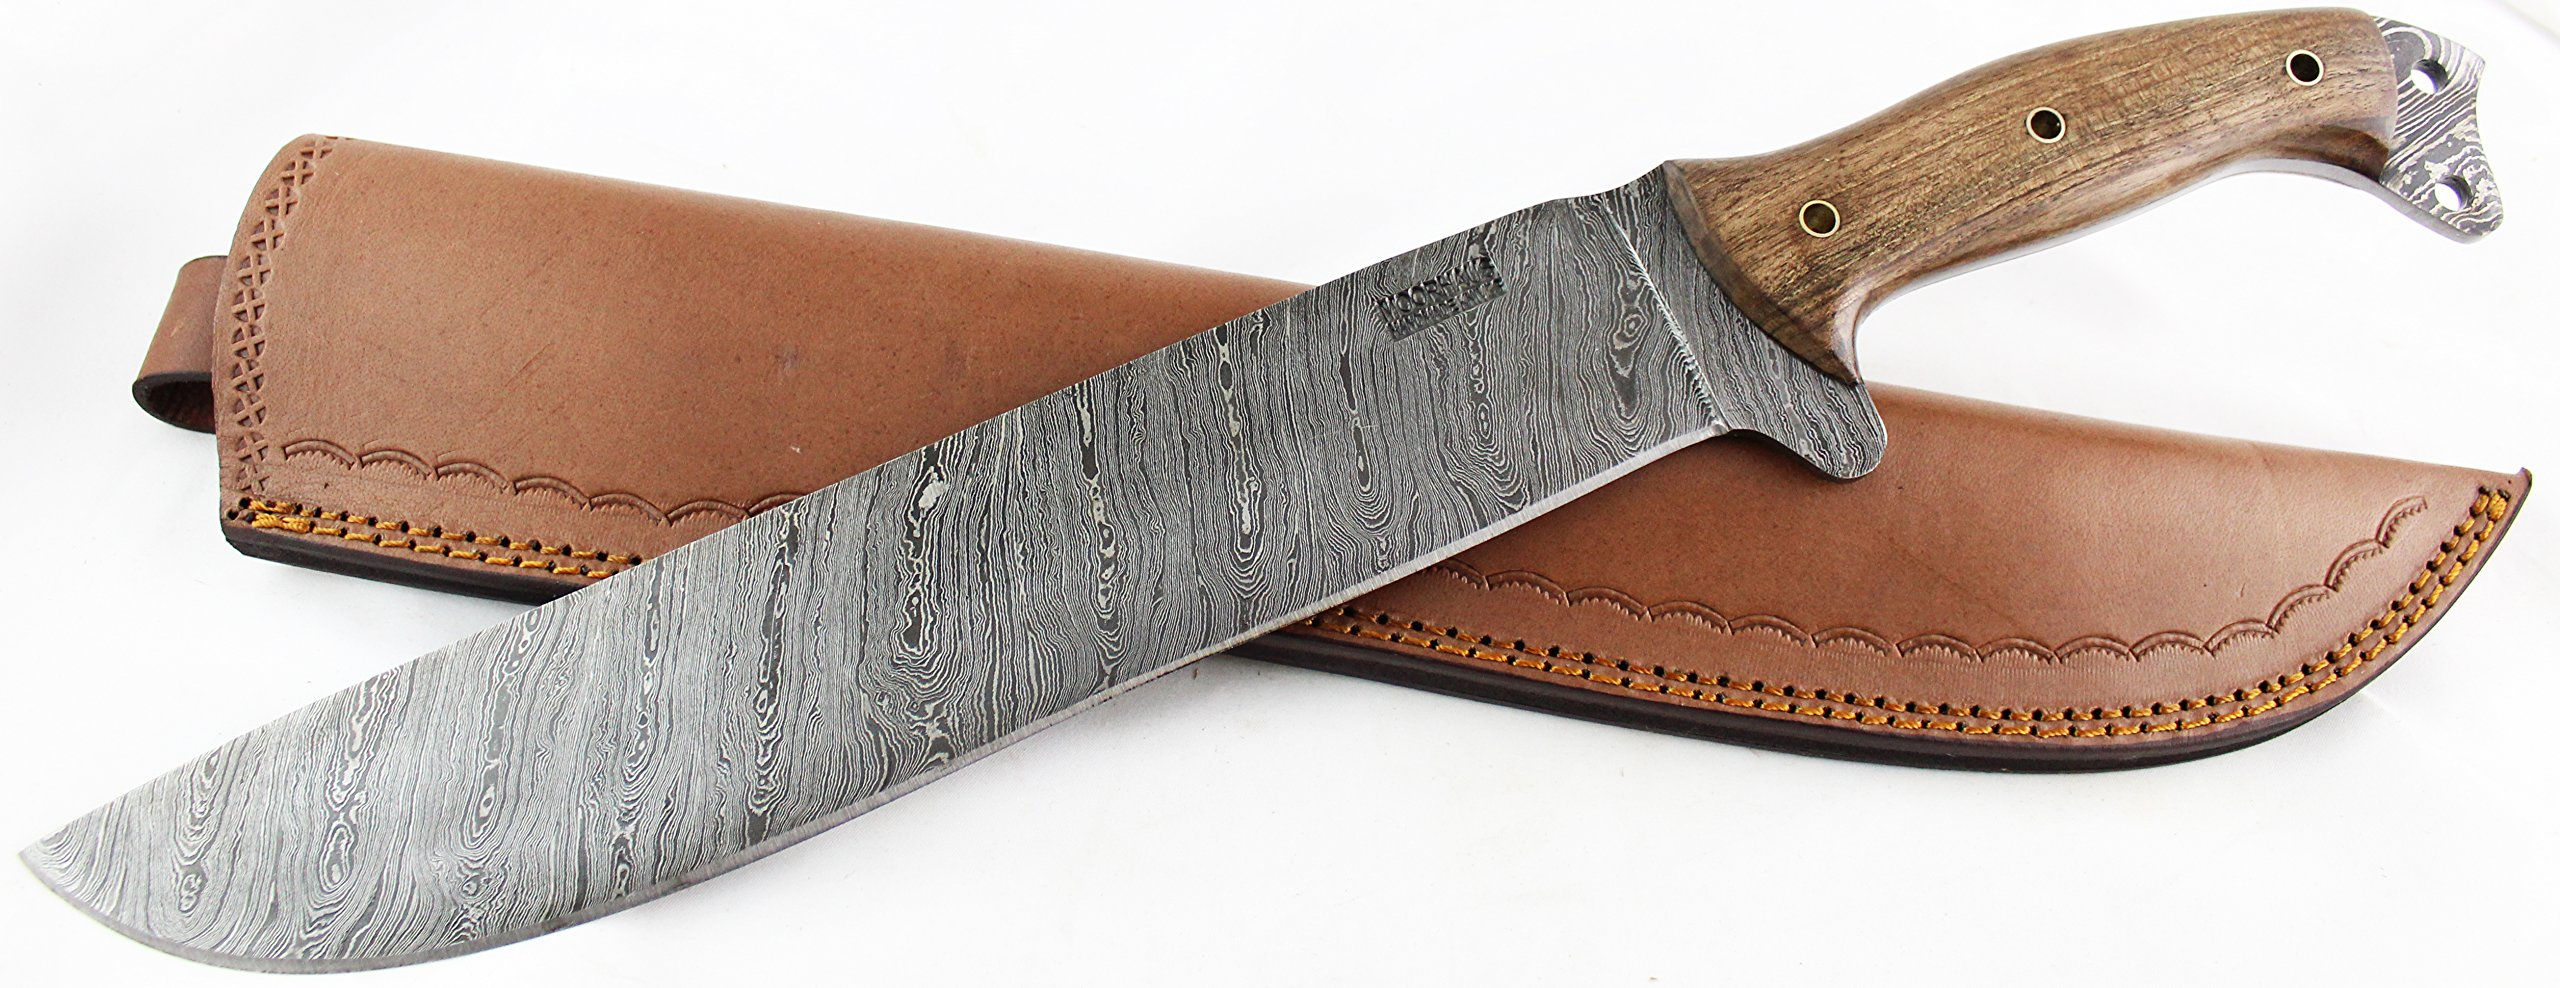 Moorhaus Damascus Machete Knife - Handmade 17.5'' Total Length - Includes Leather Sheath (Walnut Wood)